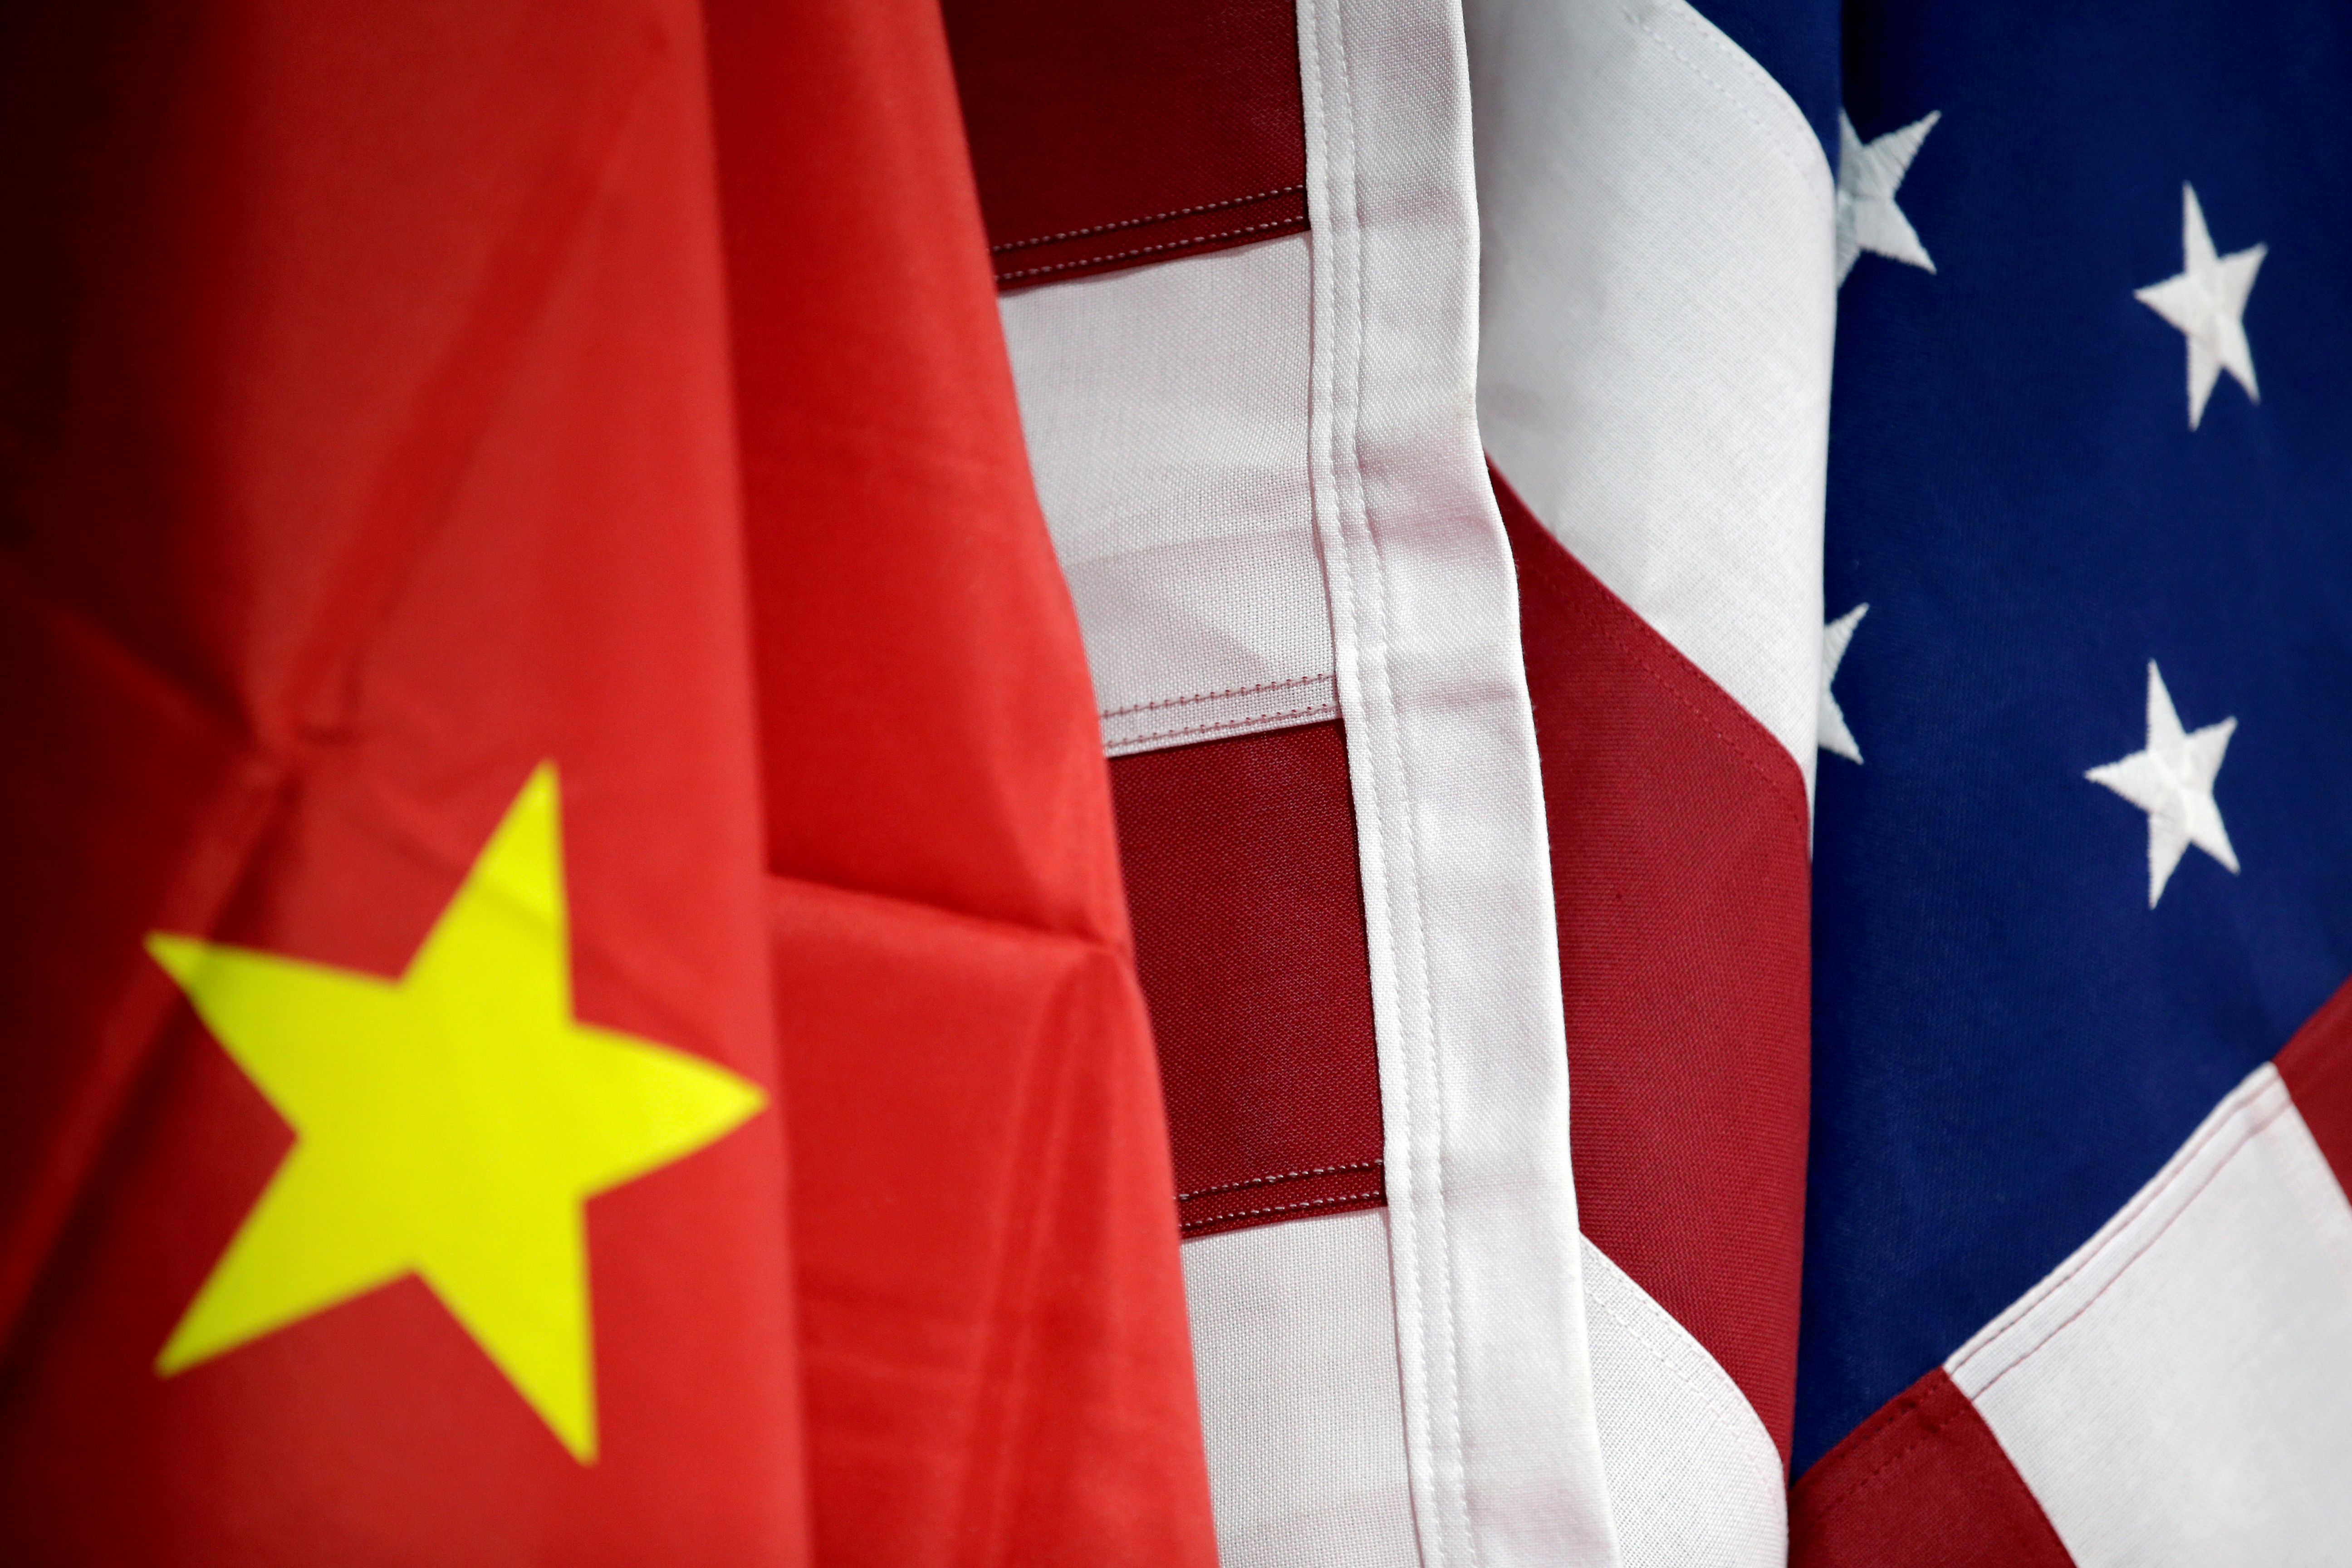 Flags of U.S. and China are displayed at American International Chamber of Commerce (AICC)'s booth during China International Fair for Trade in Services in Beijing, China, May 28, 2019. REUTERS/Jason Lee